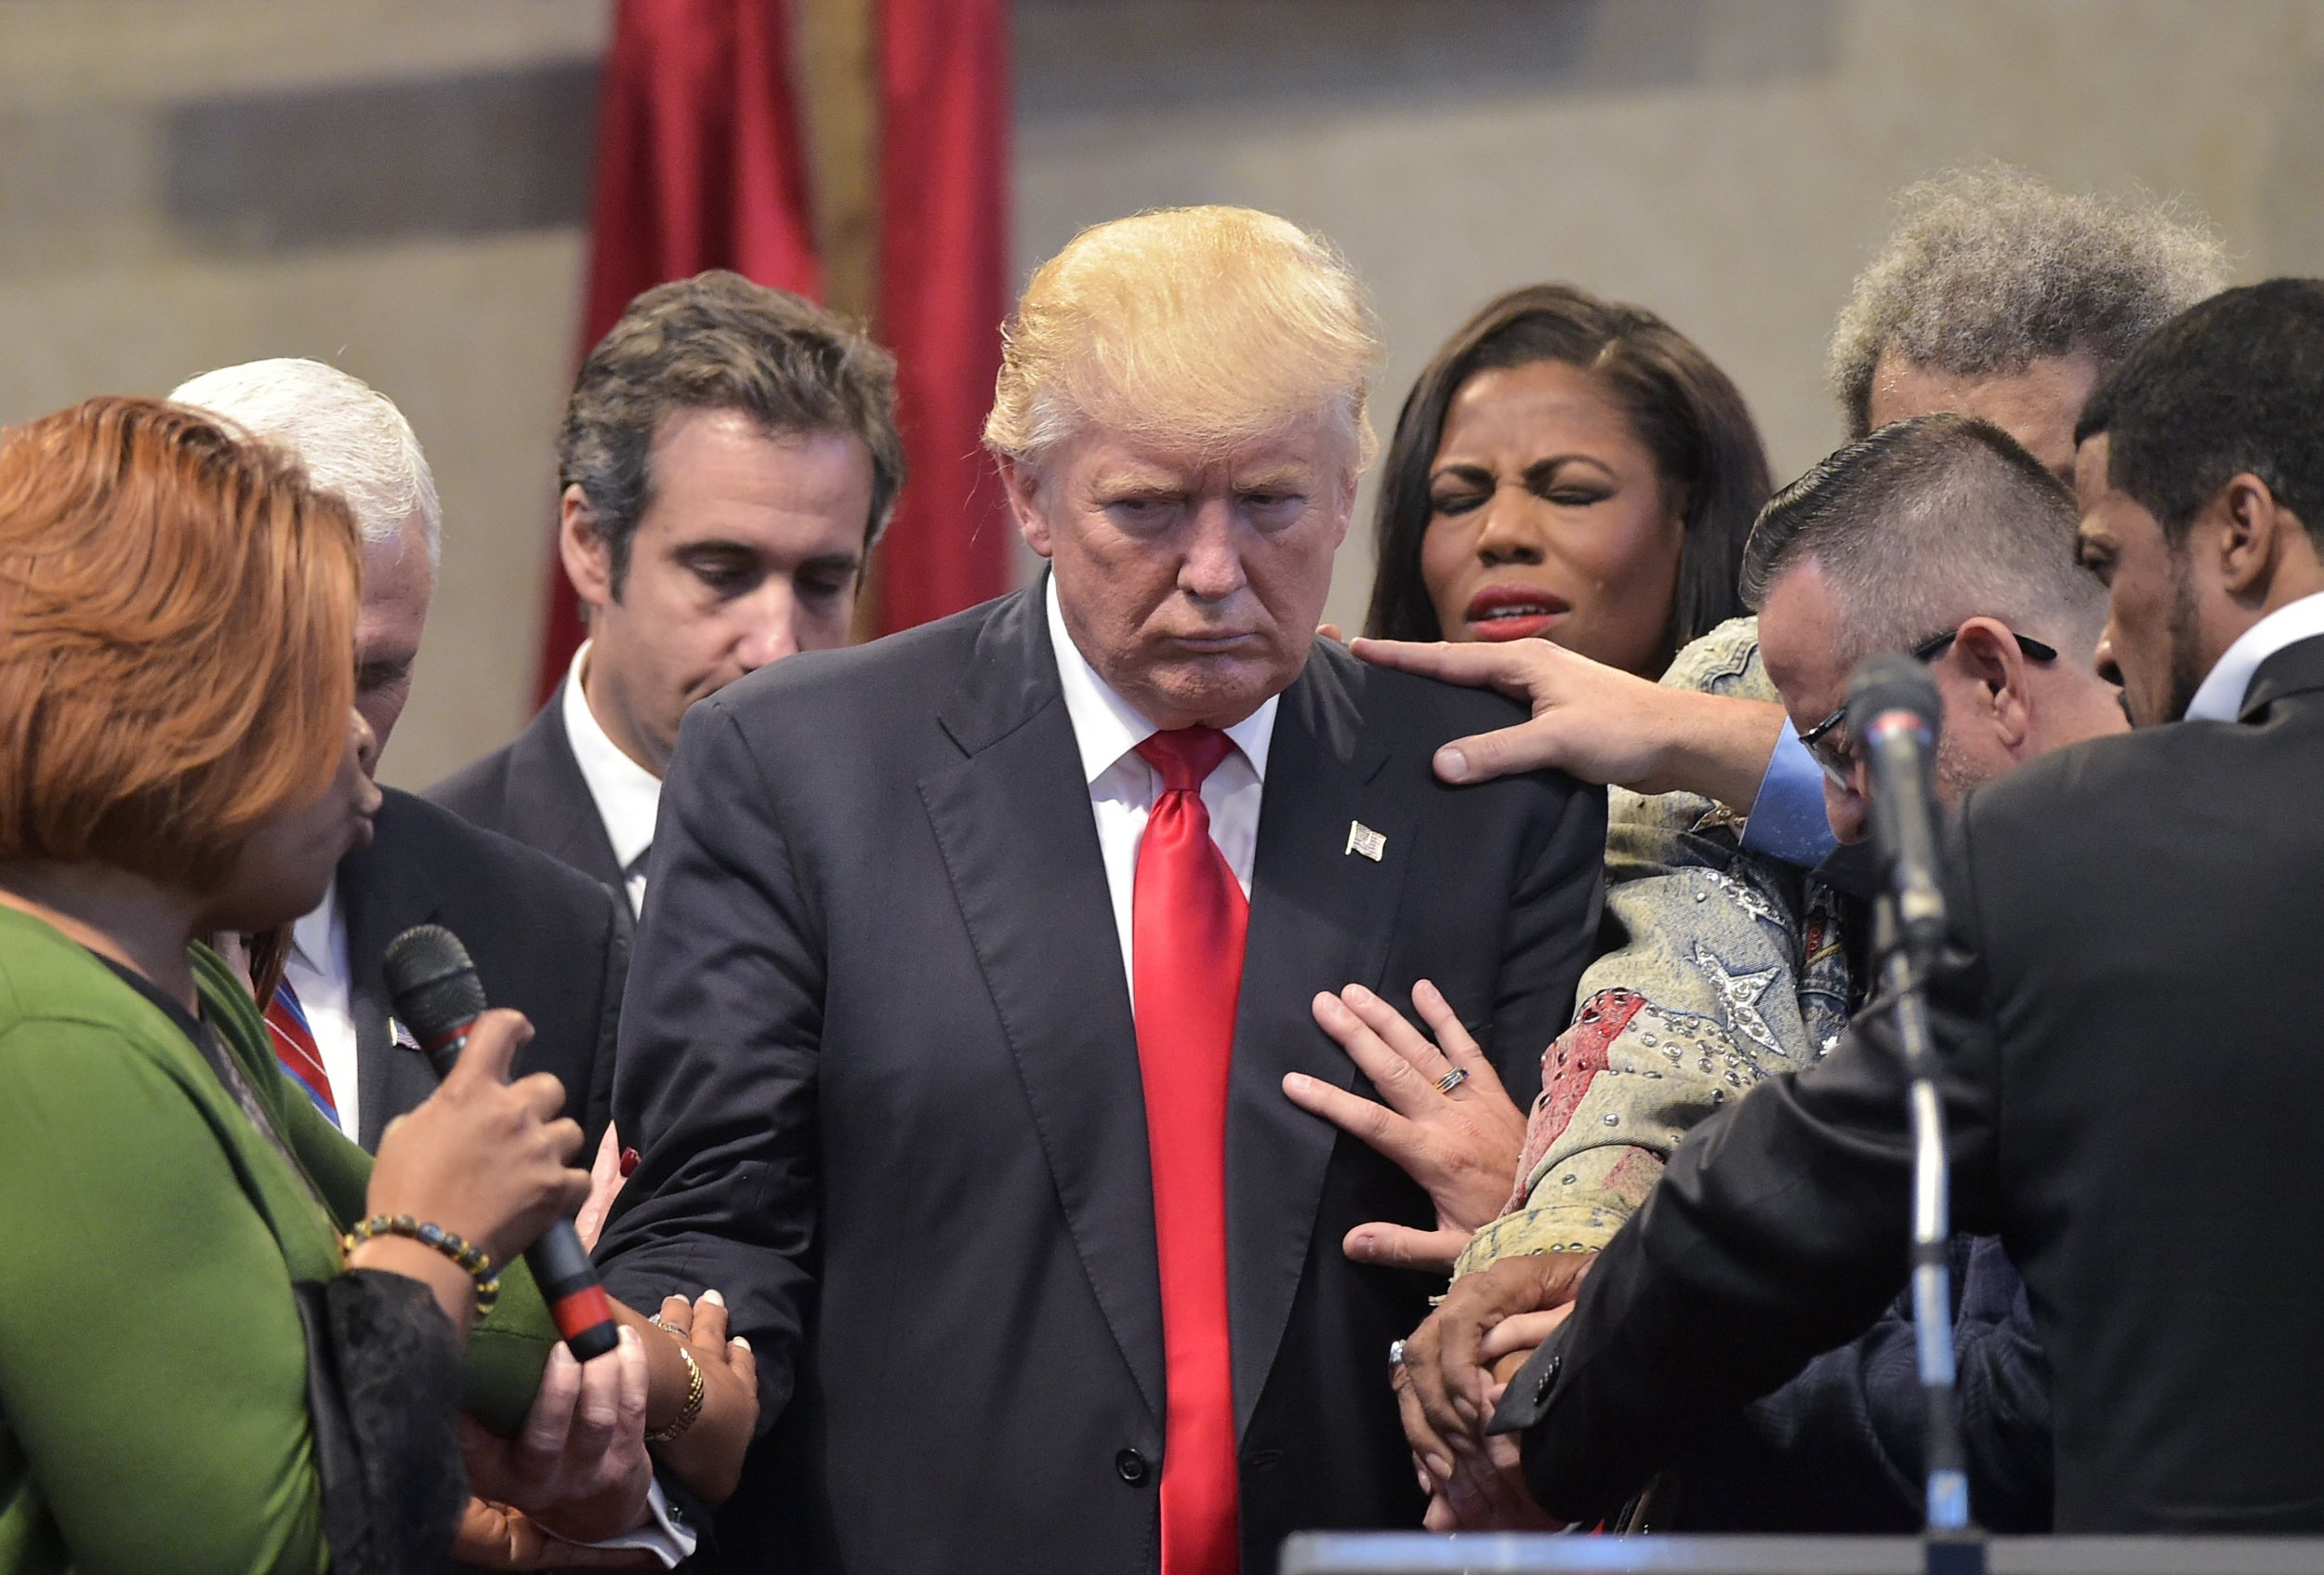 White Evangelicals Back Donald Trump Over Previous Three ...